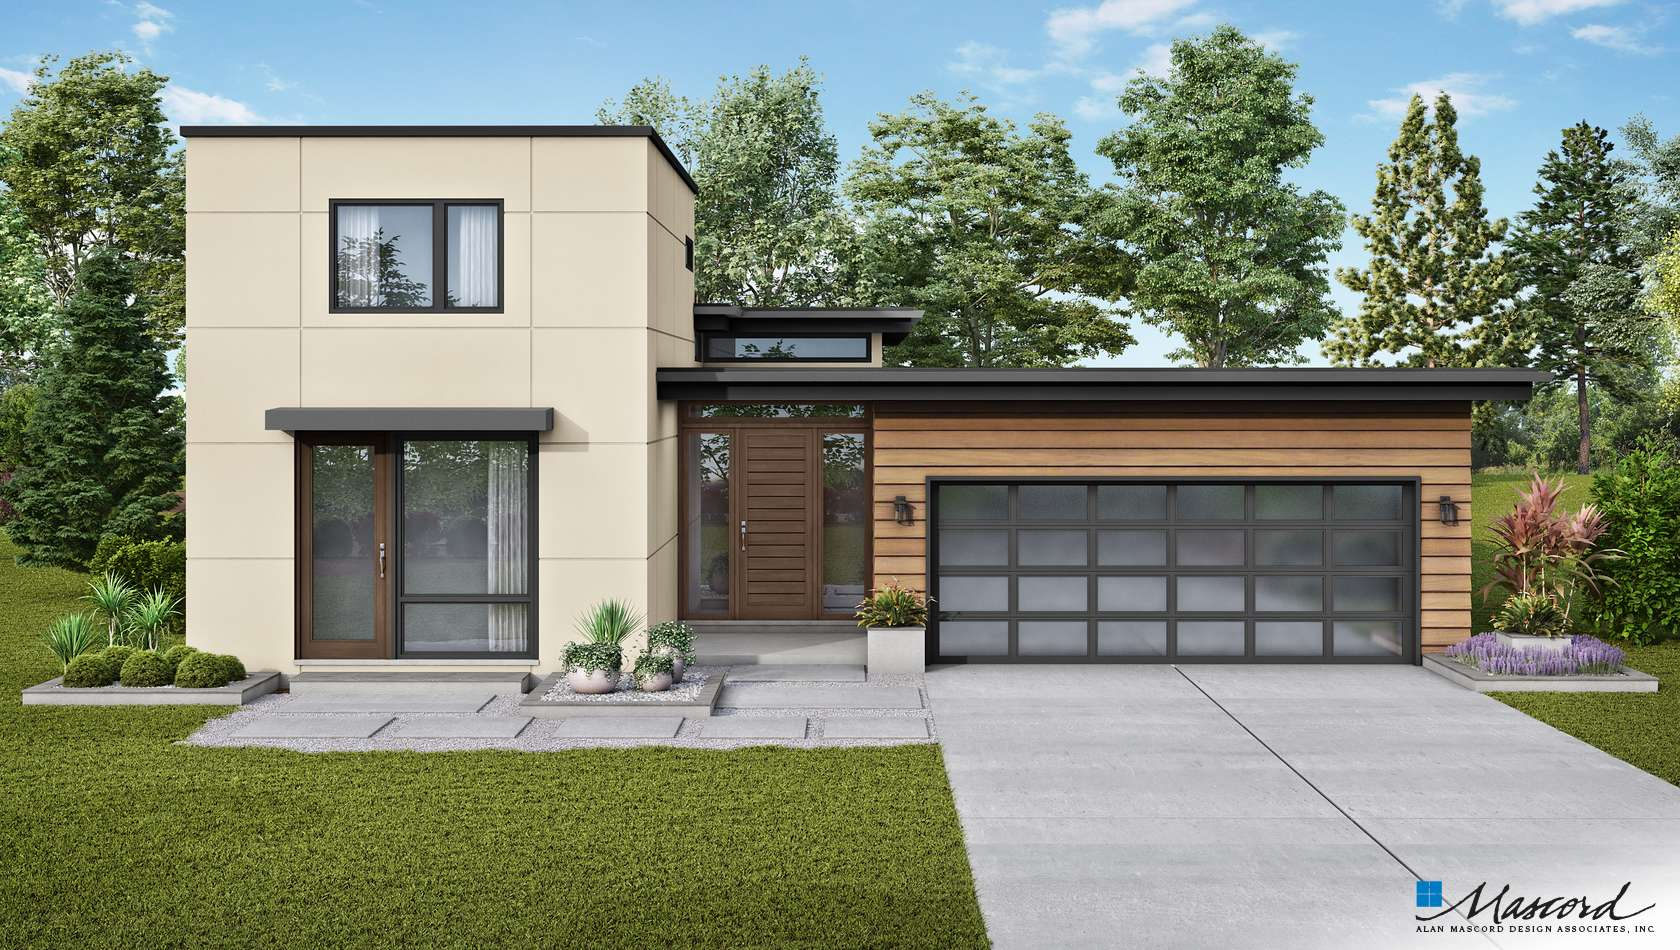 Main image for house plan 1260: The Alameda North